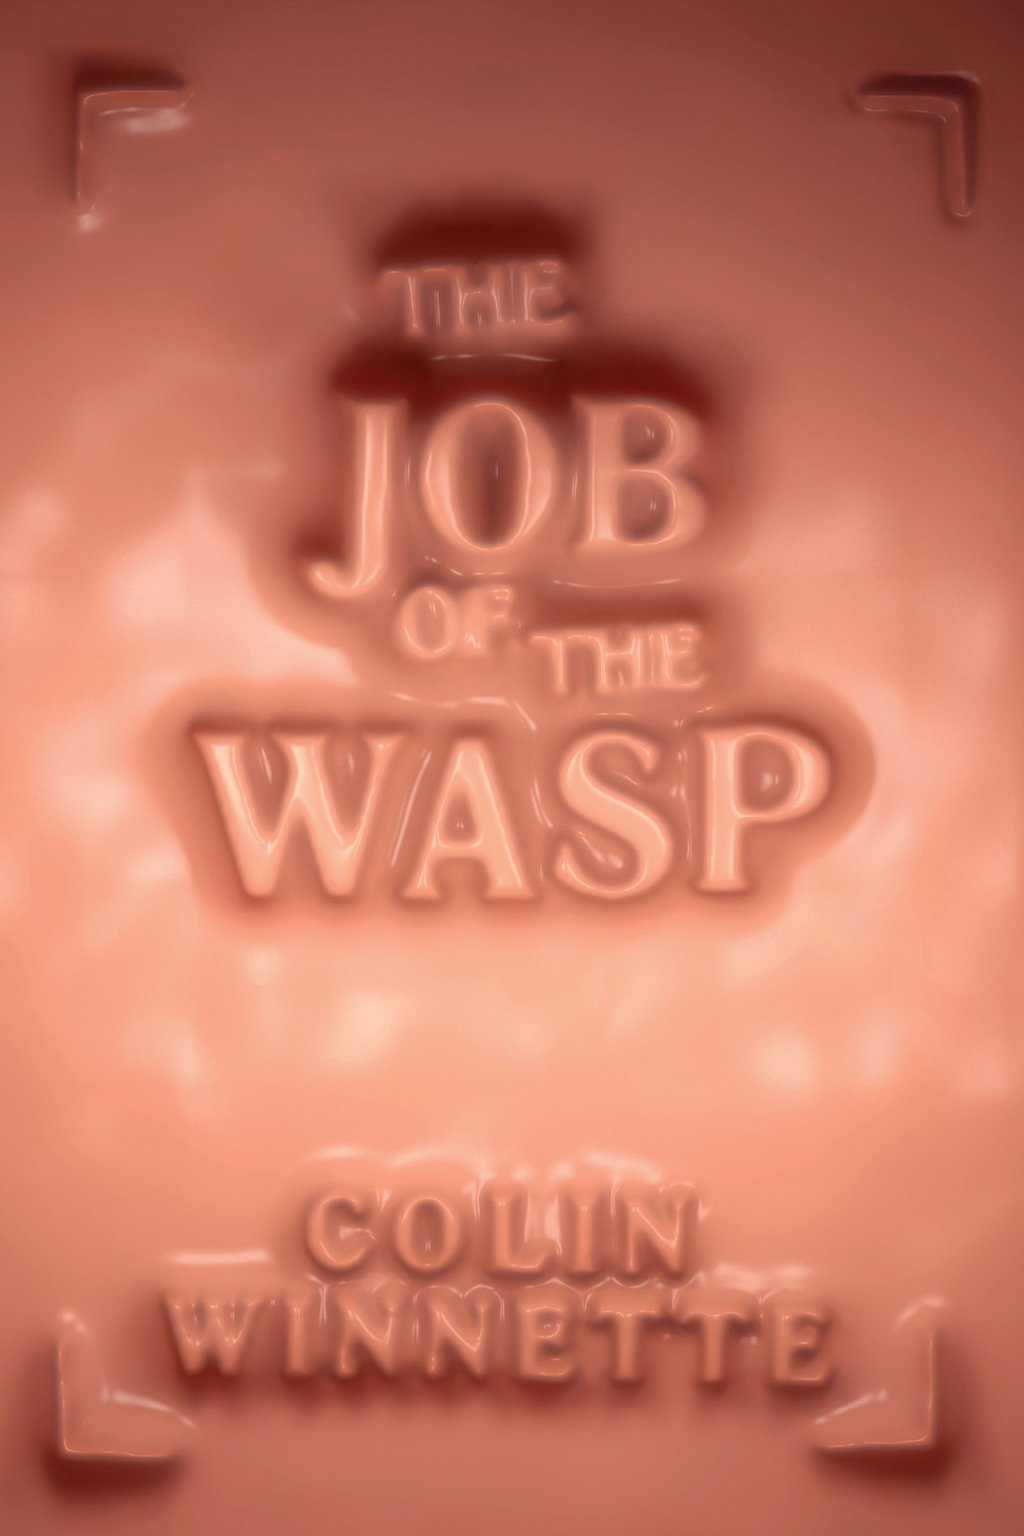 The Job of the Wasp